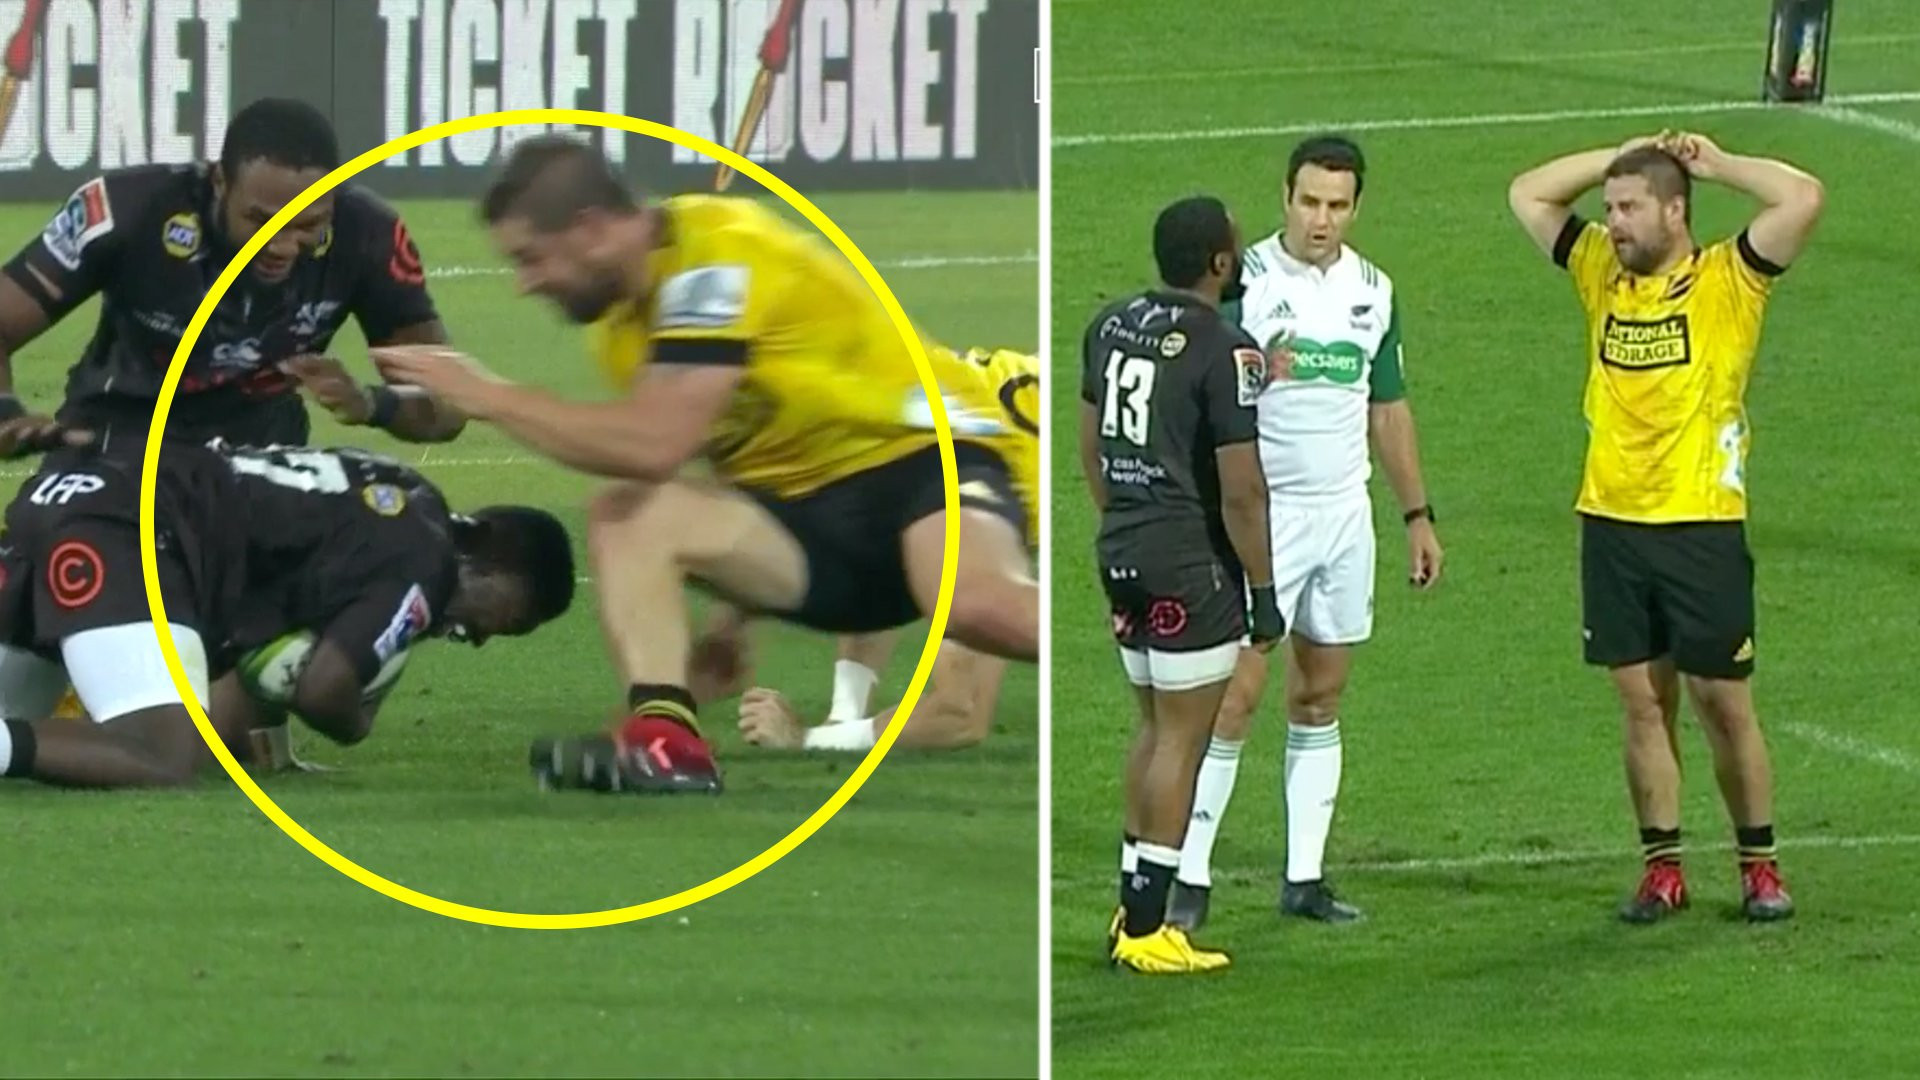 Rugby fans fuming as Dane Coles gets away with horrendous cheap shot in Super Rugby - Rugby OnSlaught